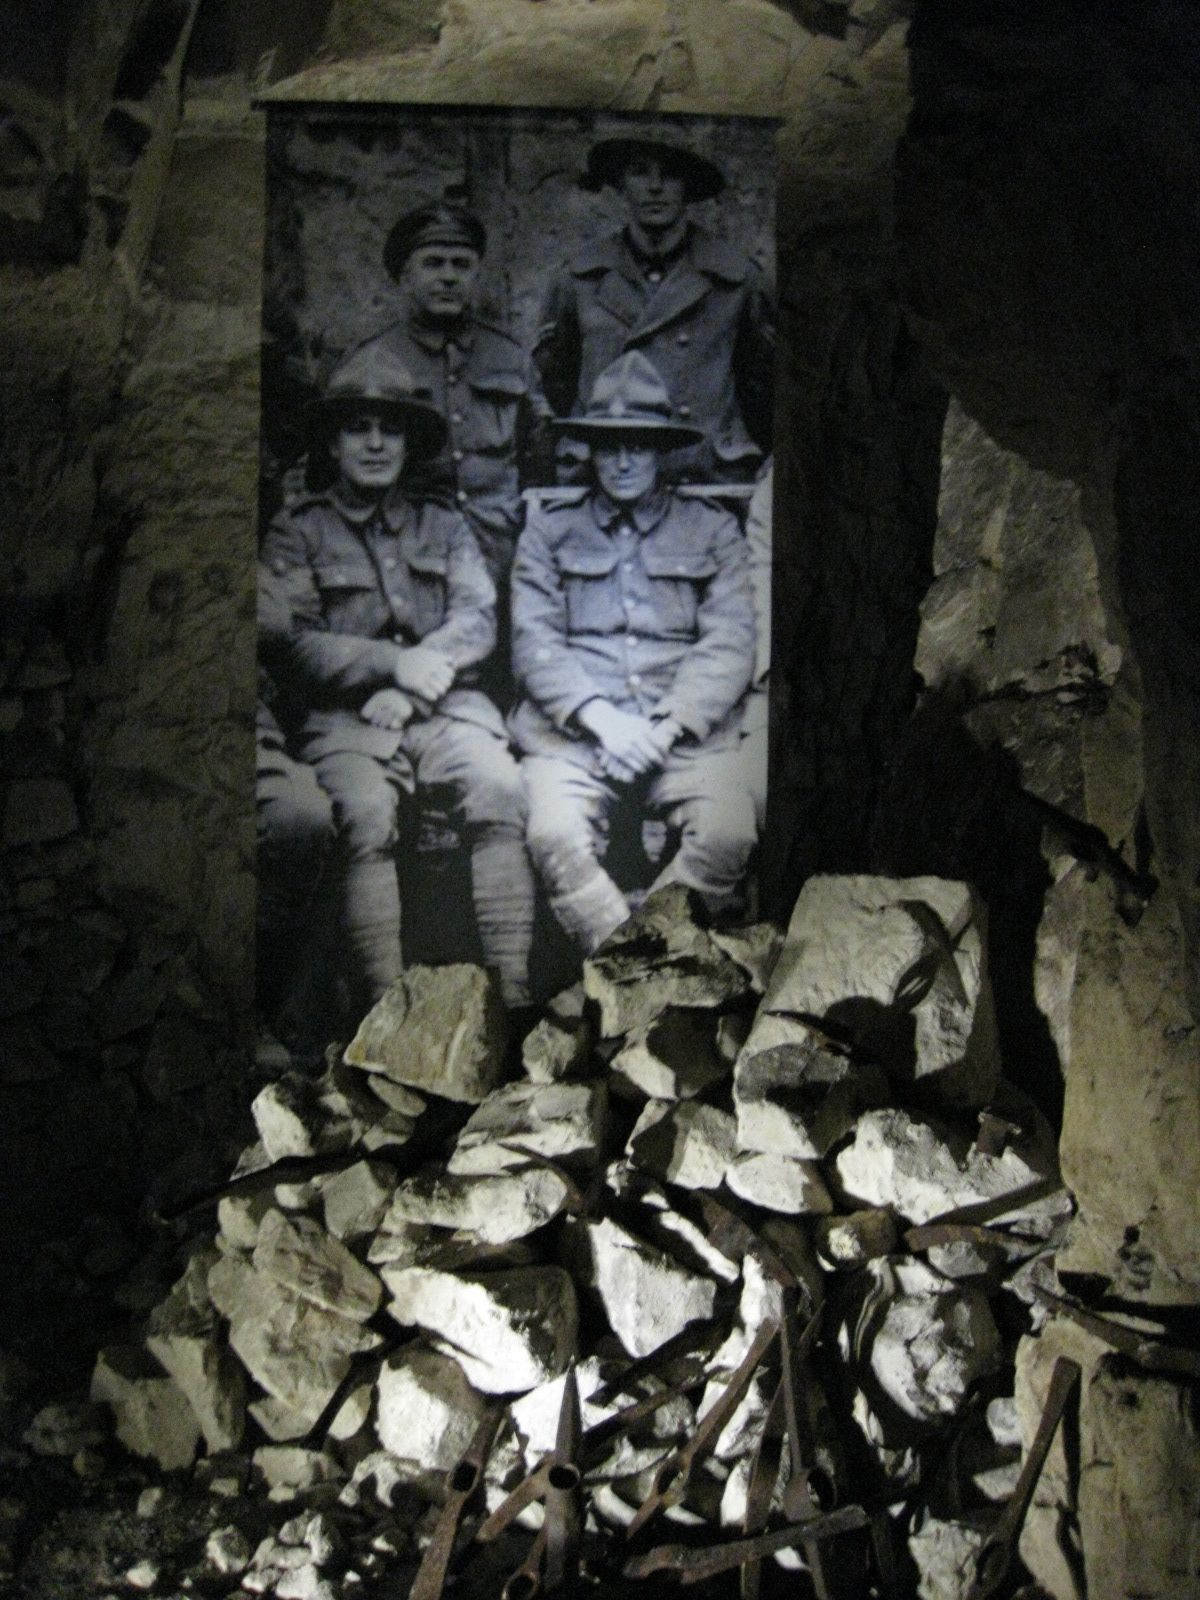 Tunnellers and tool